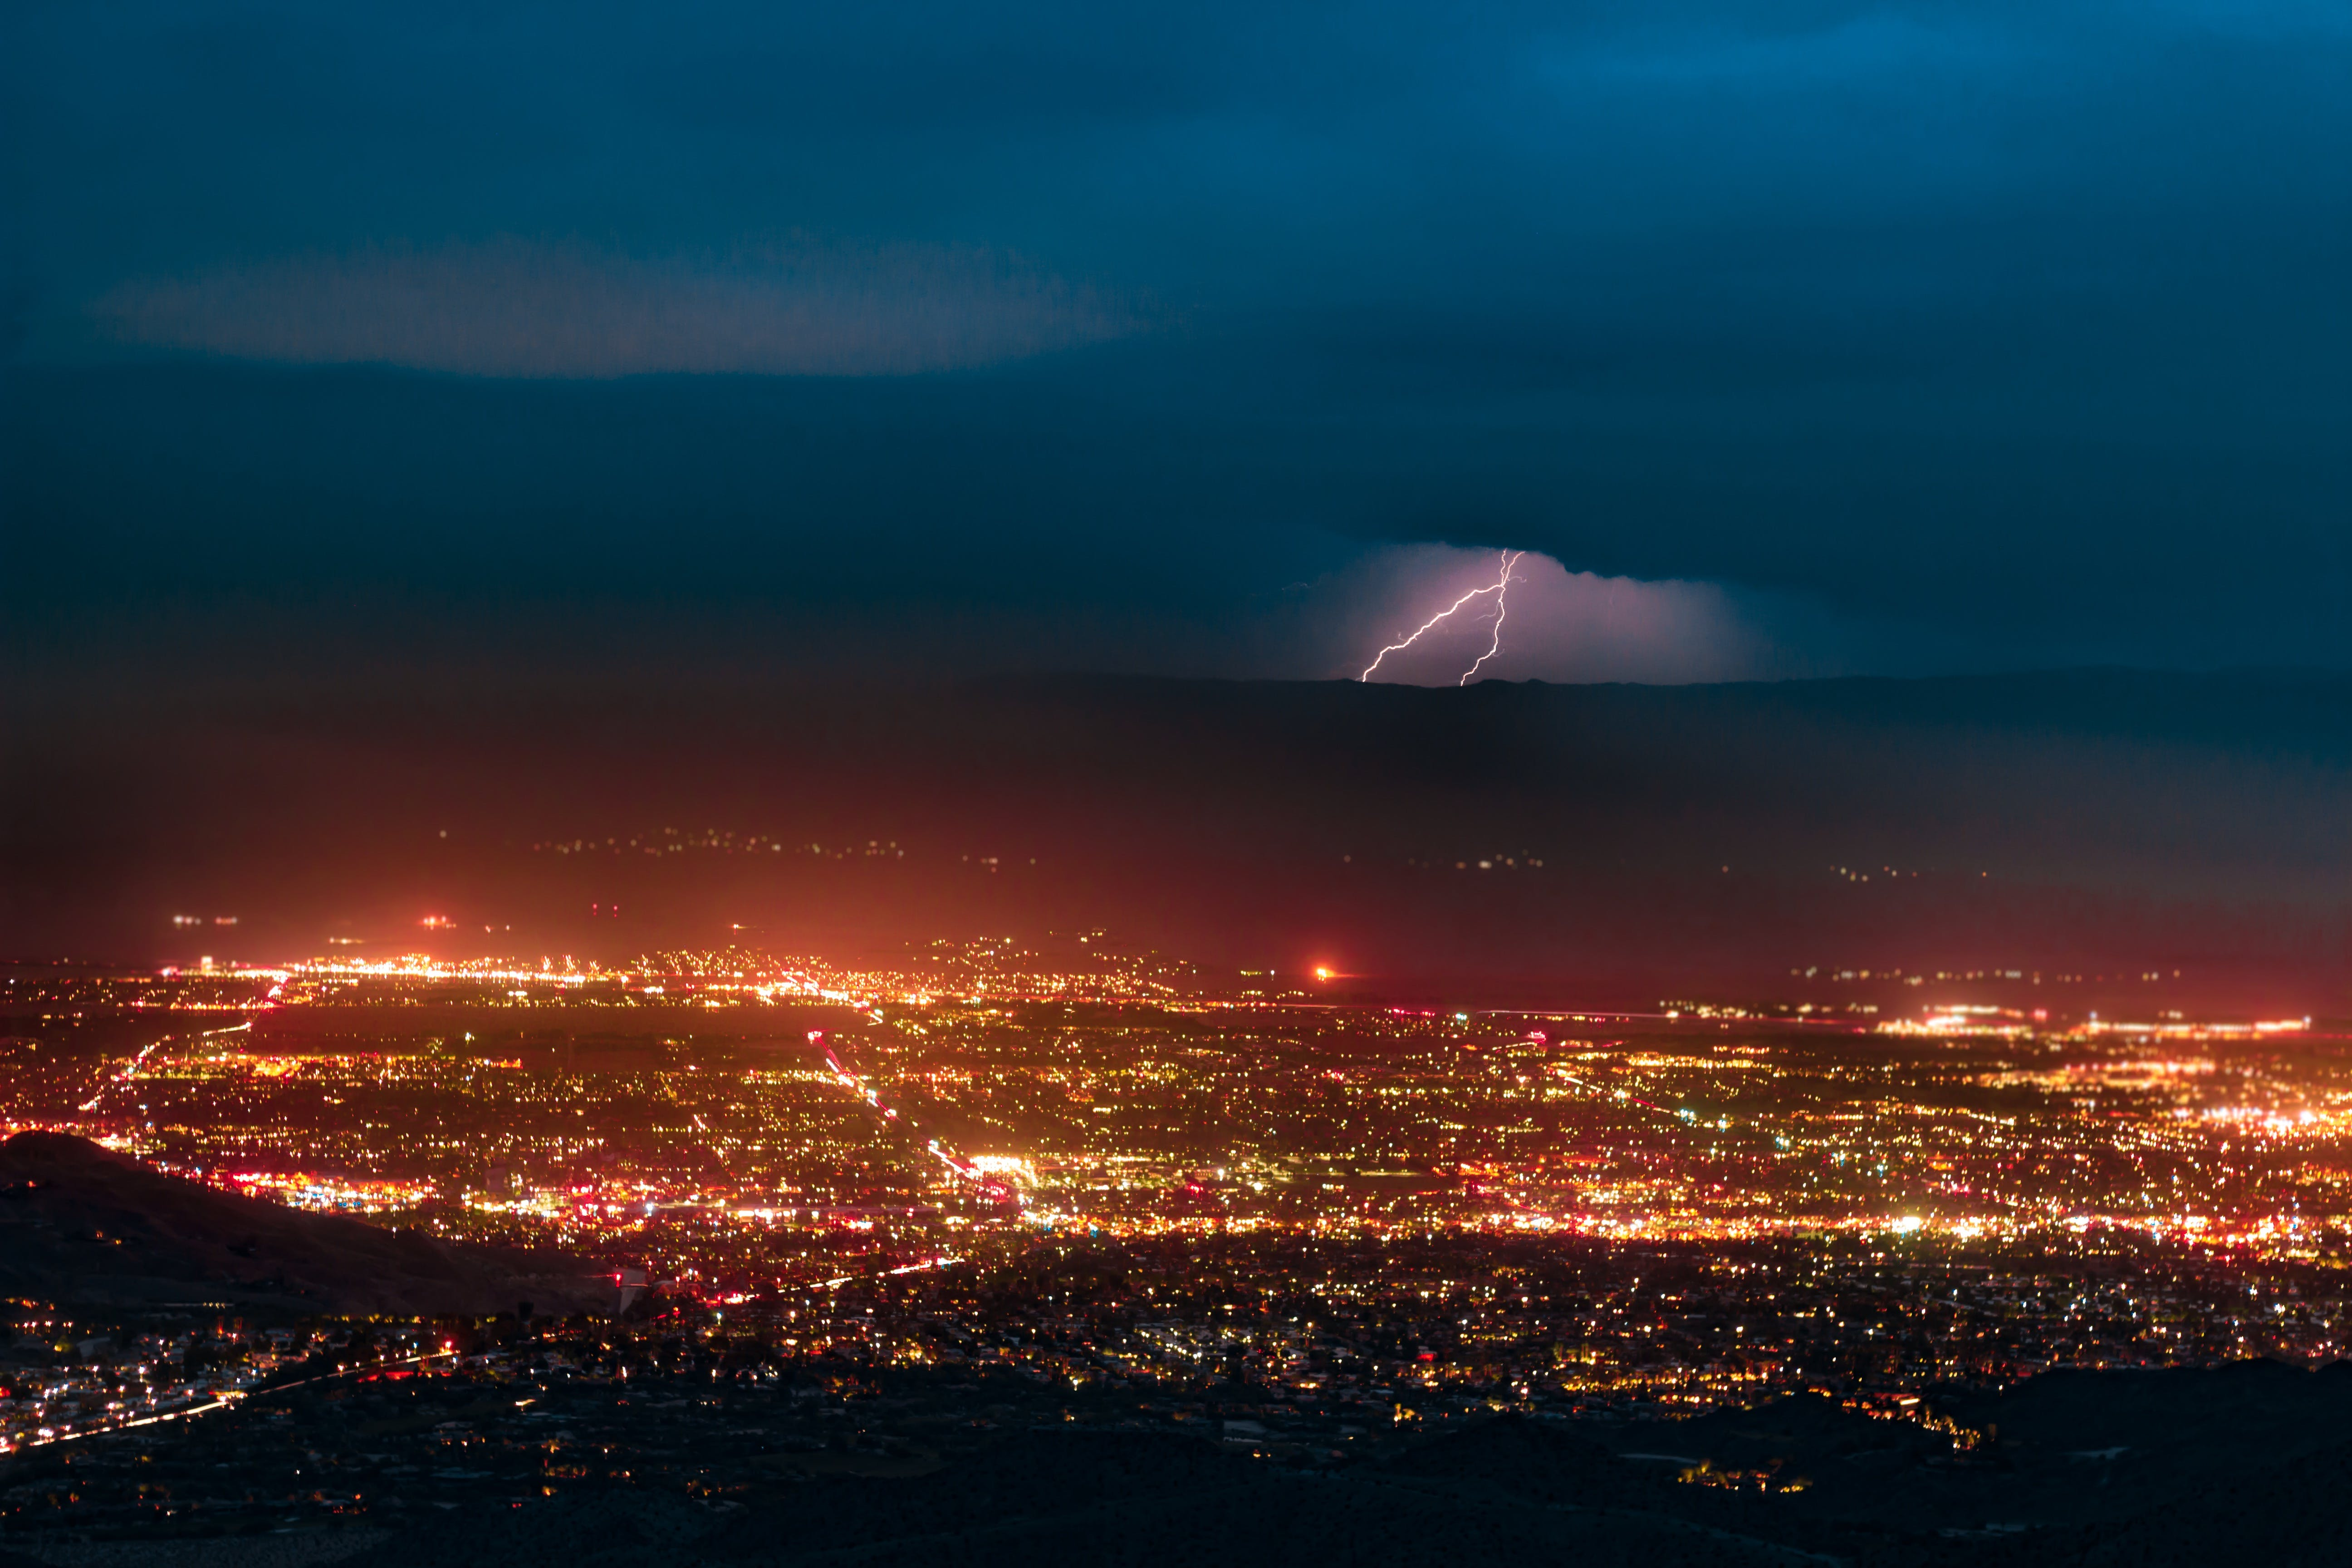 Aerial Photography of Urban City Overlooking Lightning during Nighttime